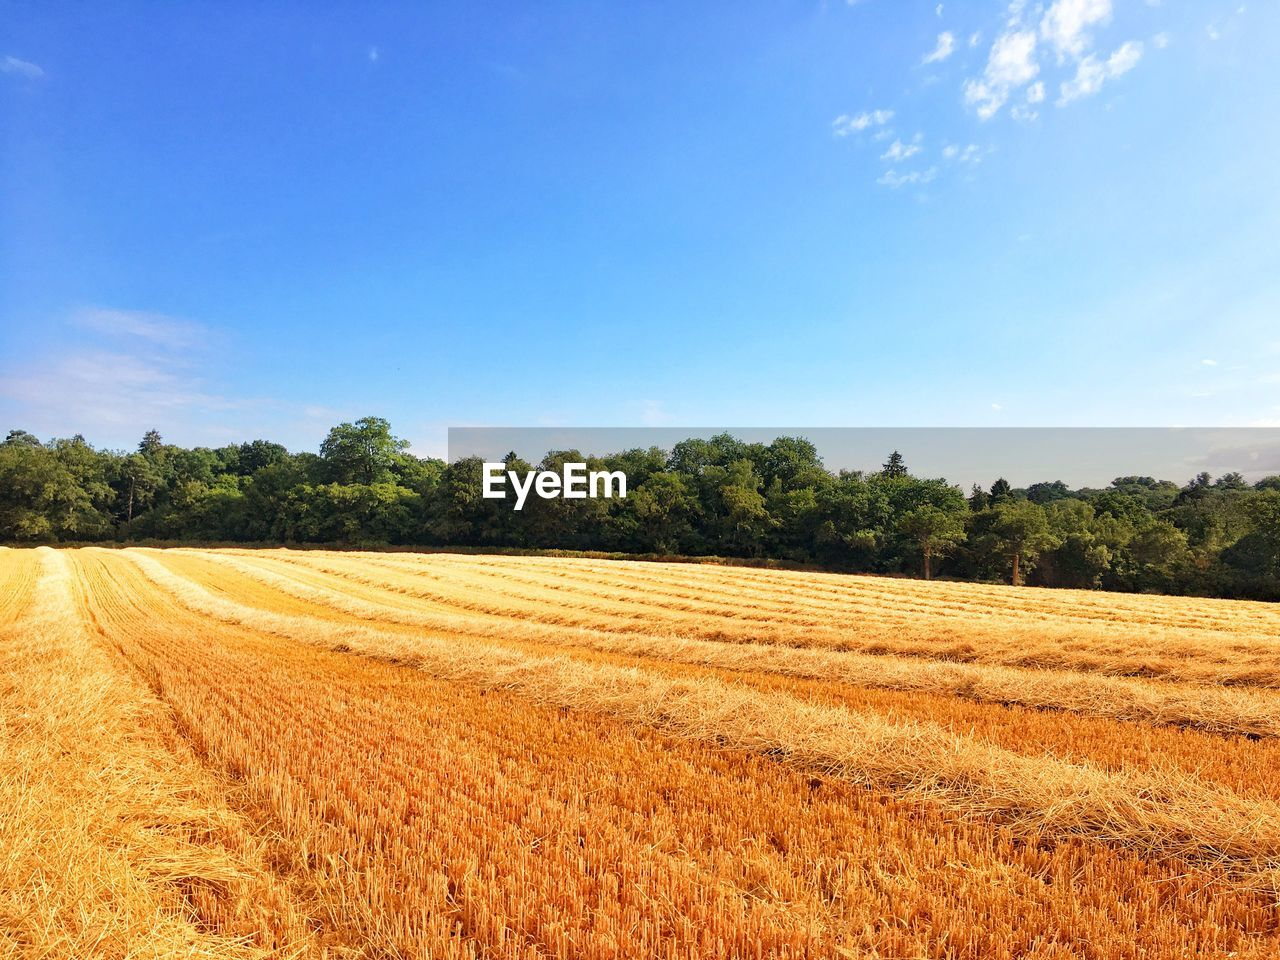 plant, landscape, field, sky, tranquil scene, land, tree, environment, agriculture, tranquility, rural scene, growth, beauty in nature, scenics - nature, nature, day, no people, farm, sunlight, blue, outdoors, plantation